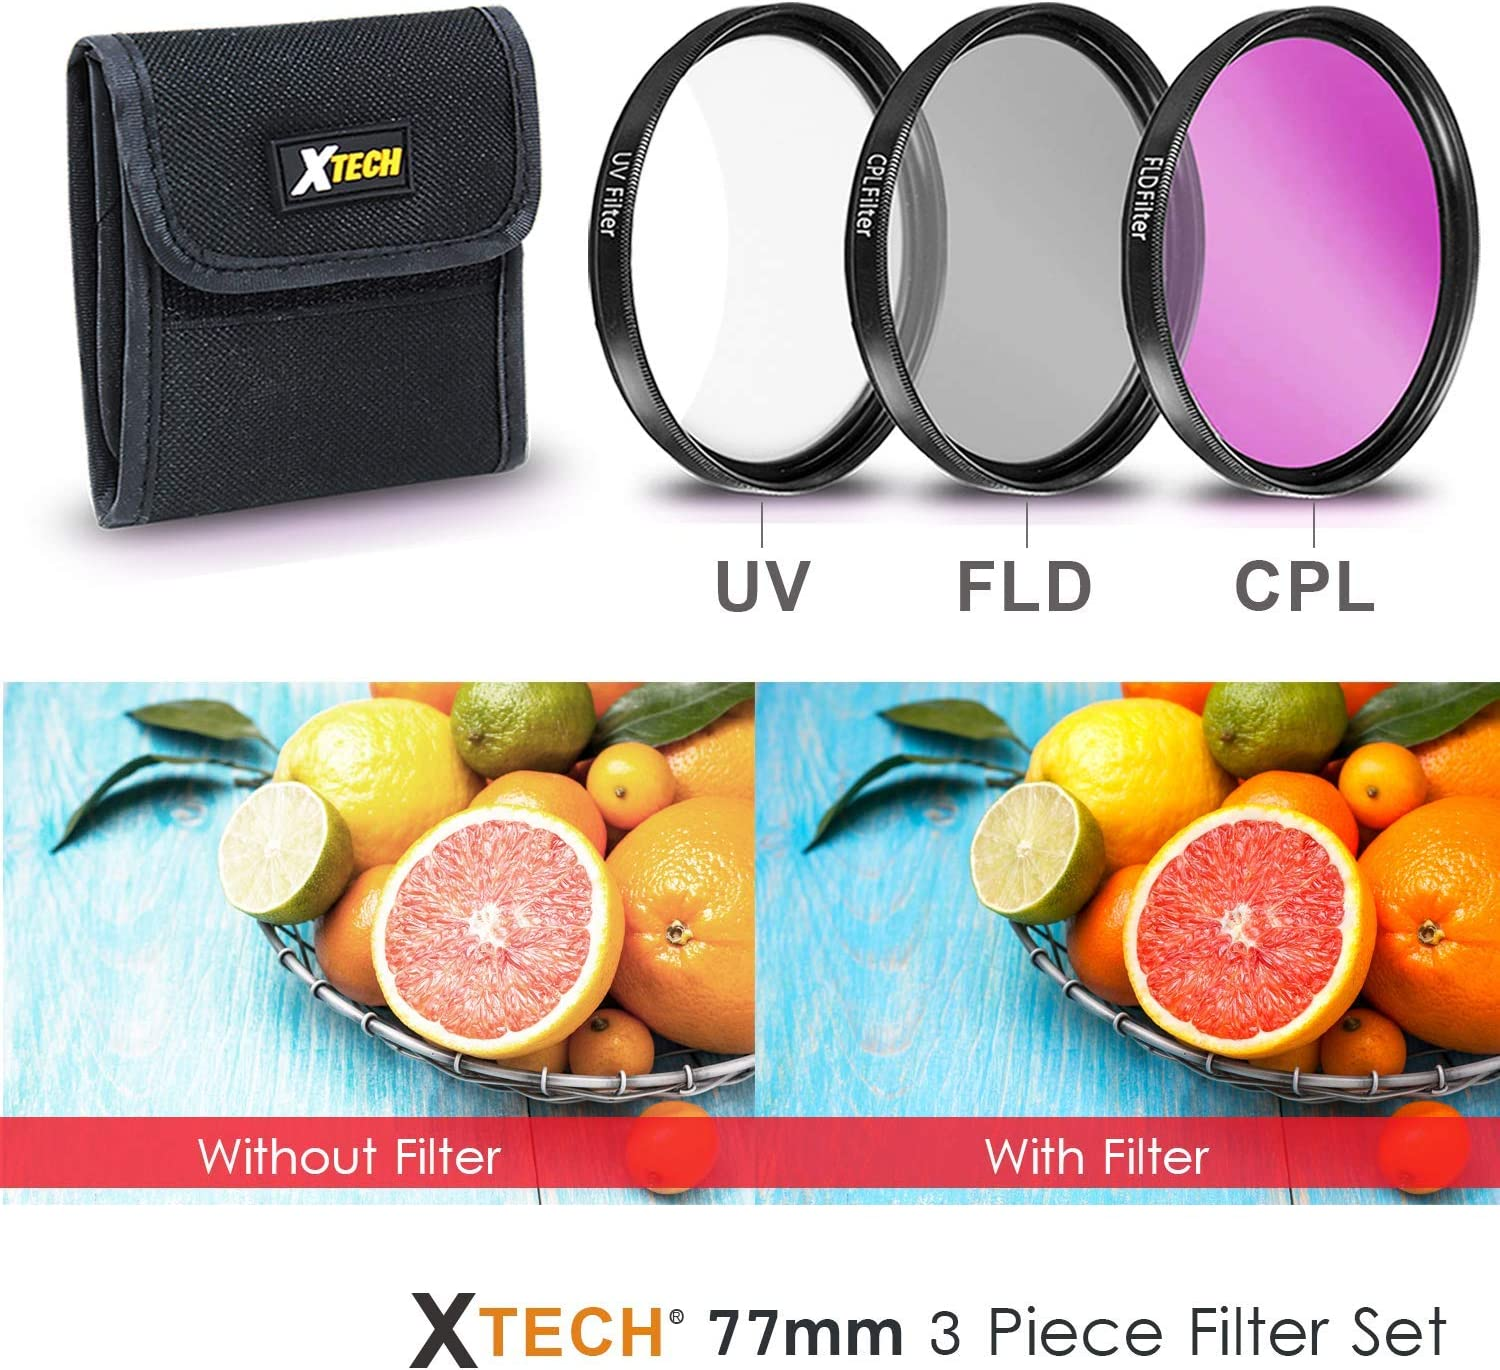 4 Close-up Macro Filters 55MM Professional Lens Filter Accessory Kit for Nikon D3400 D5600 D7500 Camera with Nikon AF-P DX 18-55mm Lens UV FLD CPL ND2 ND4 ND8 +1 +2 +4 +10 ND Filters Set